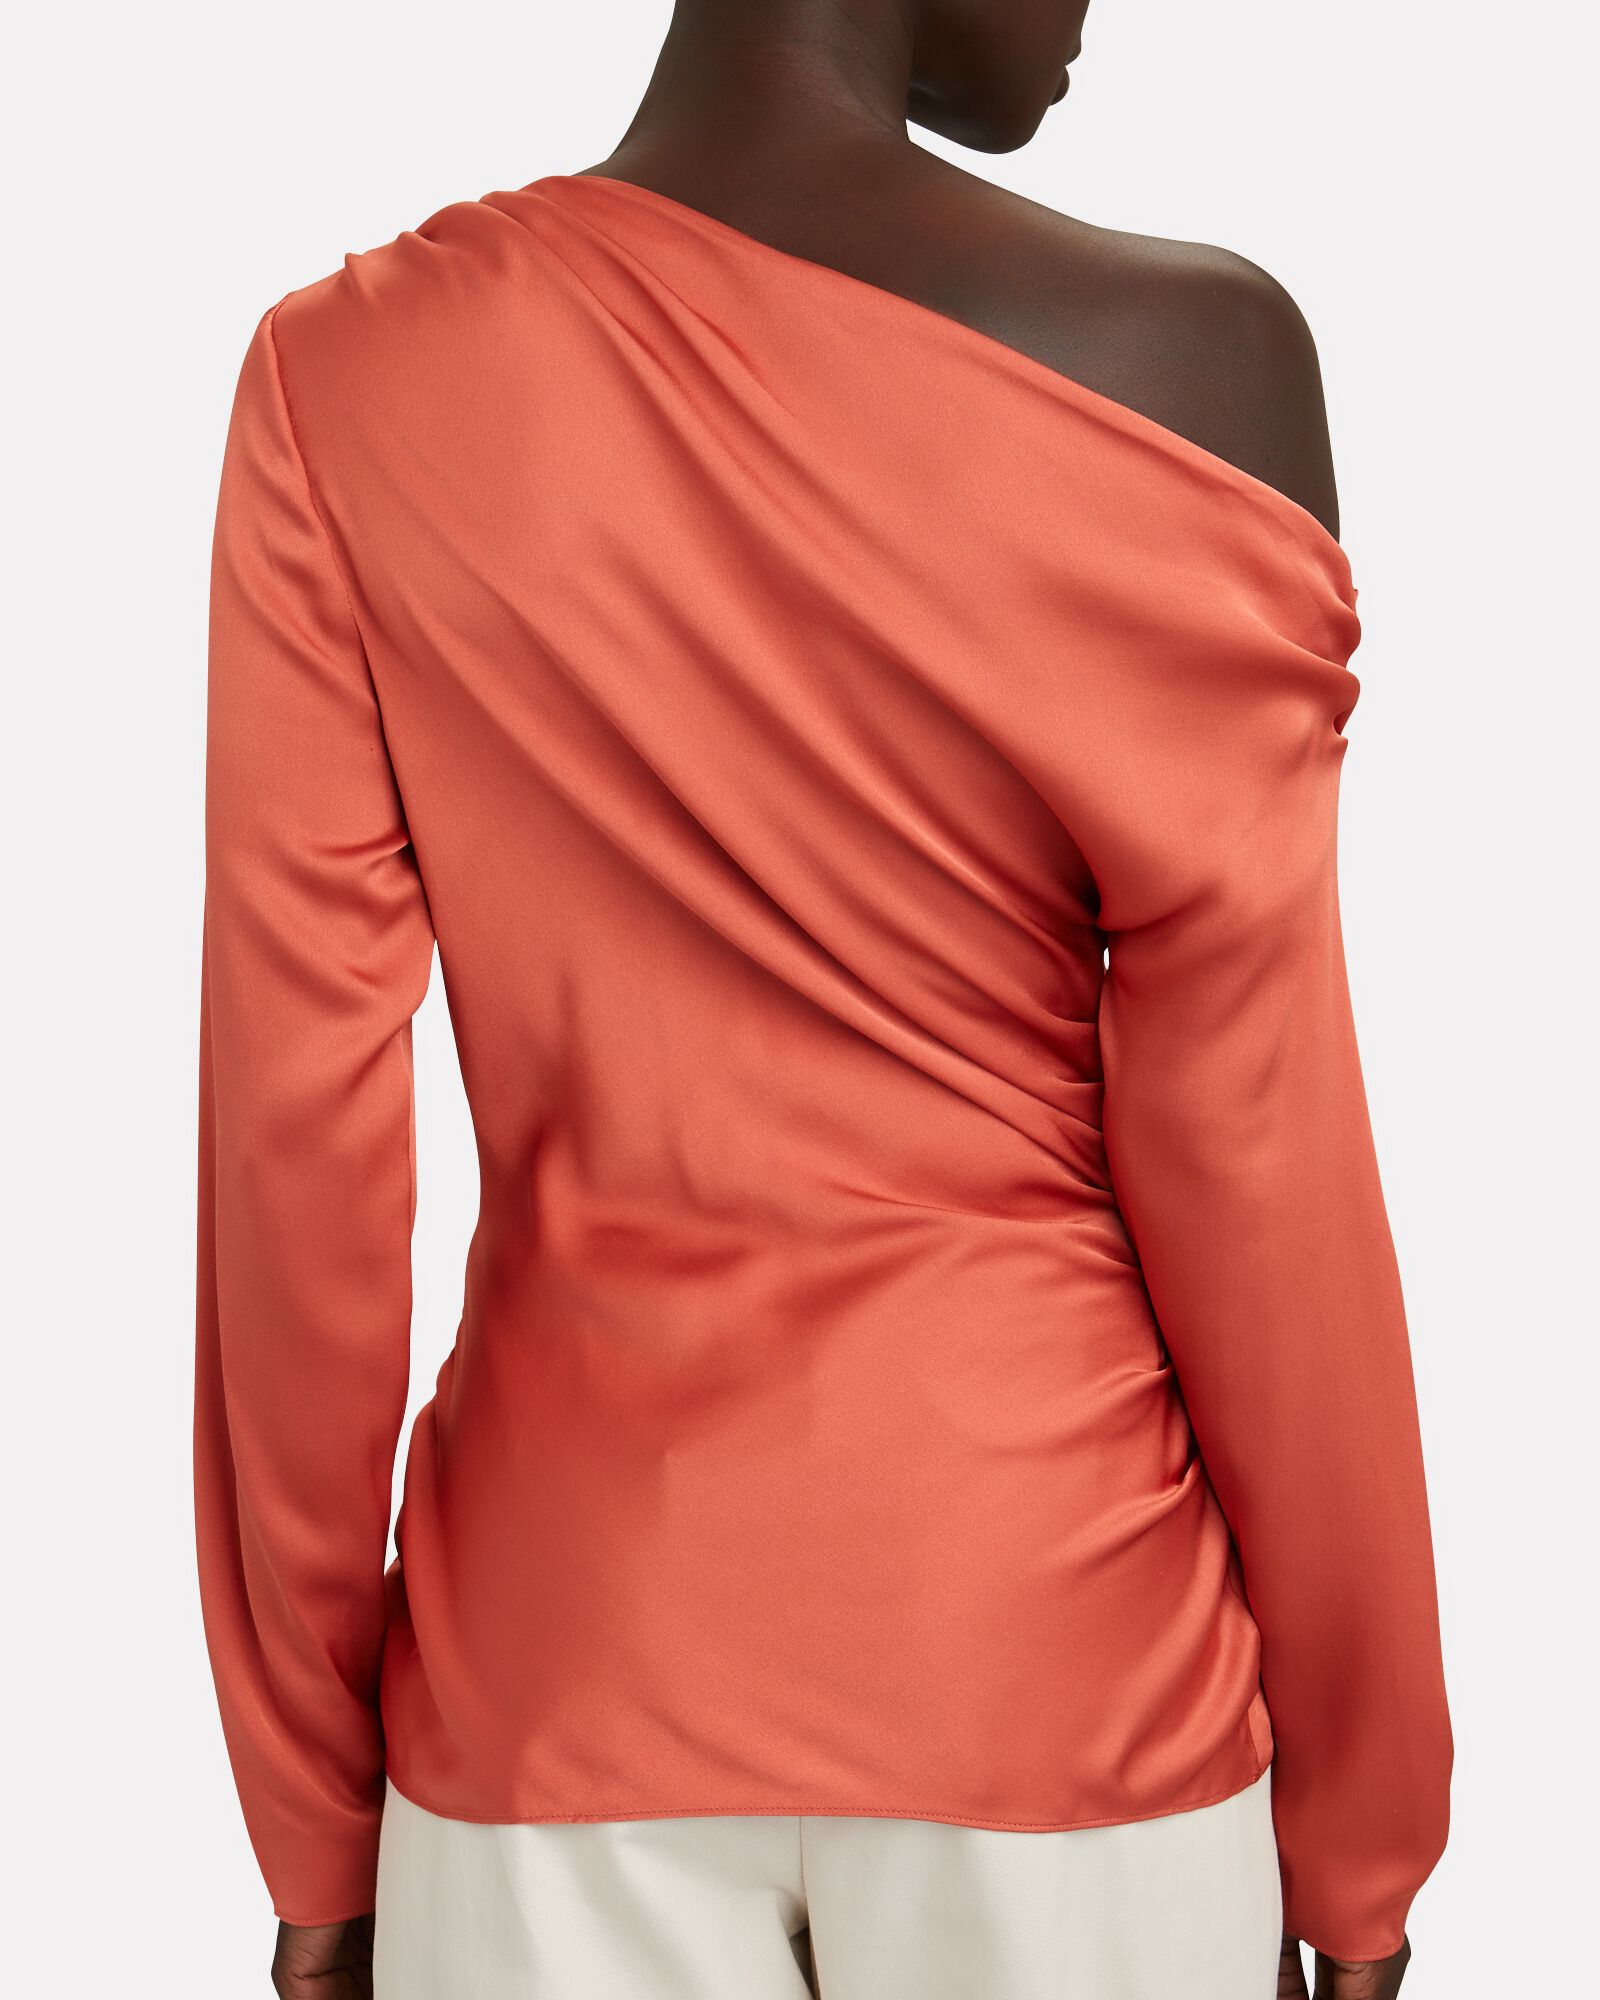 Blake Satin One-Shoulder Top, ORANGE, hi-res